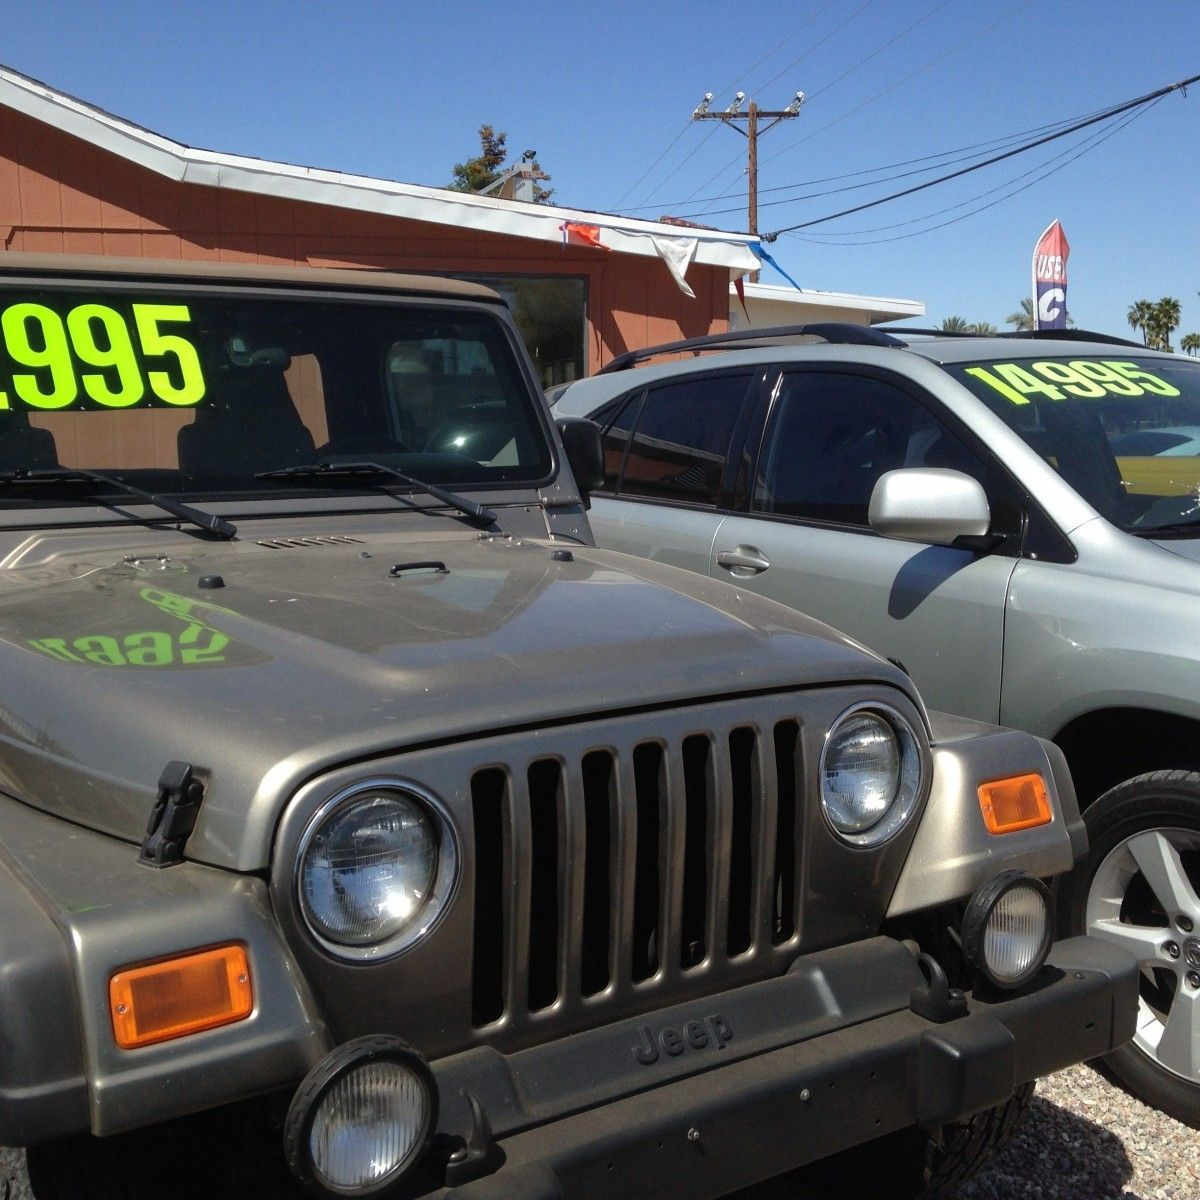 Cars for Sale Near Me for 2000 Awesome Cars for Sale Near